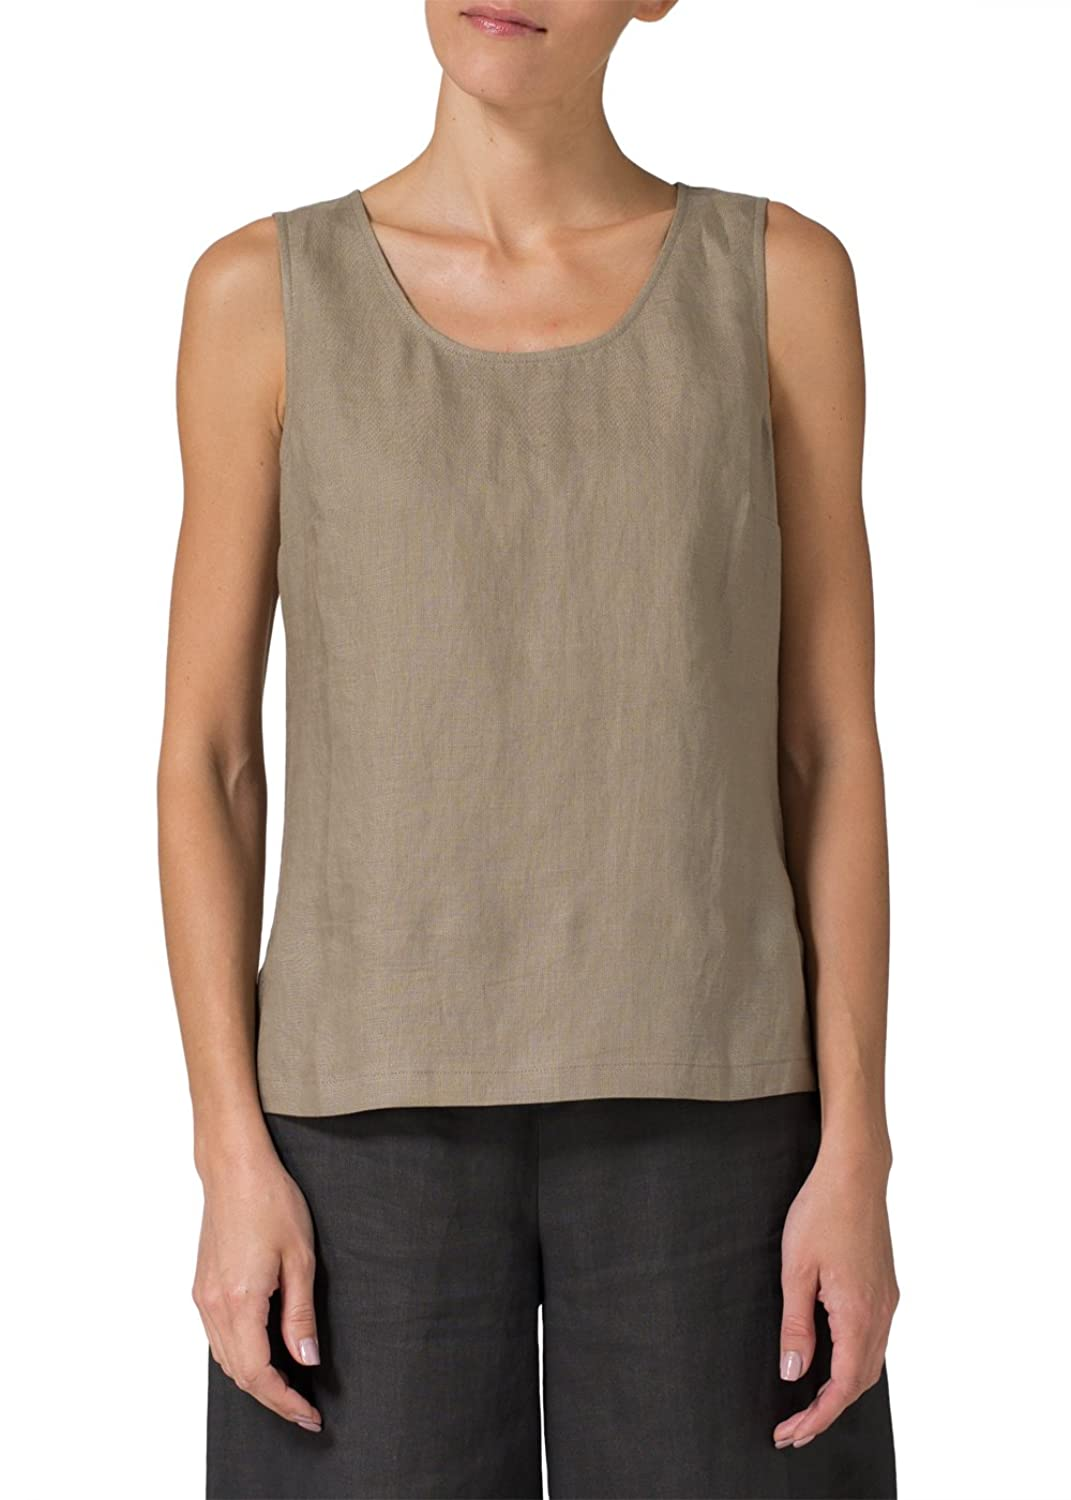 Vivid Linen Sleeveless Pullover Top